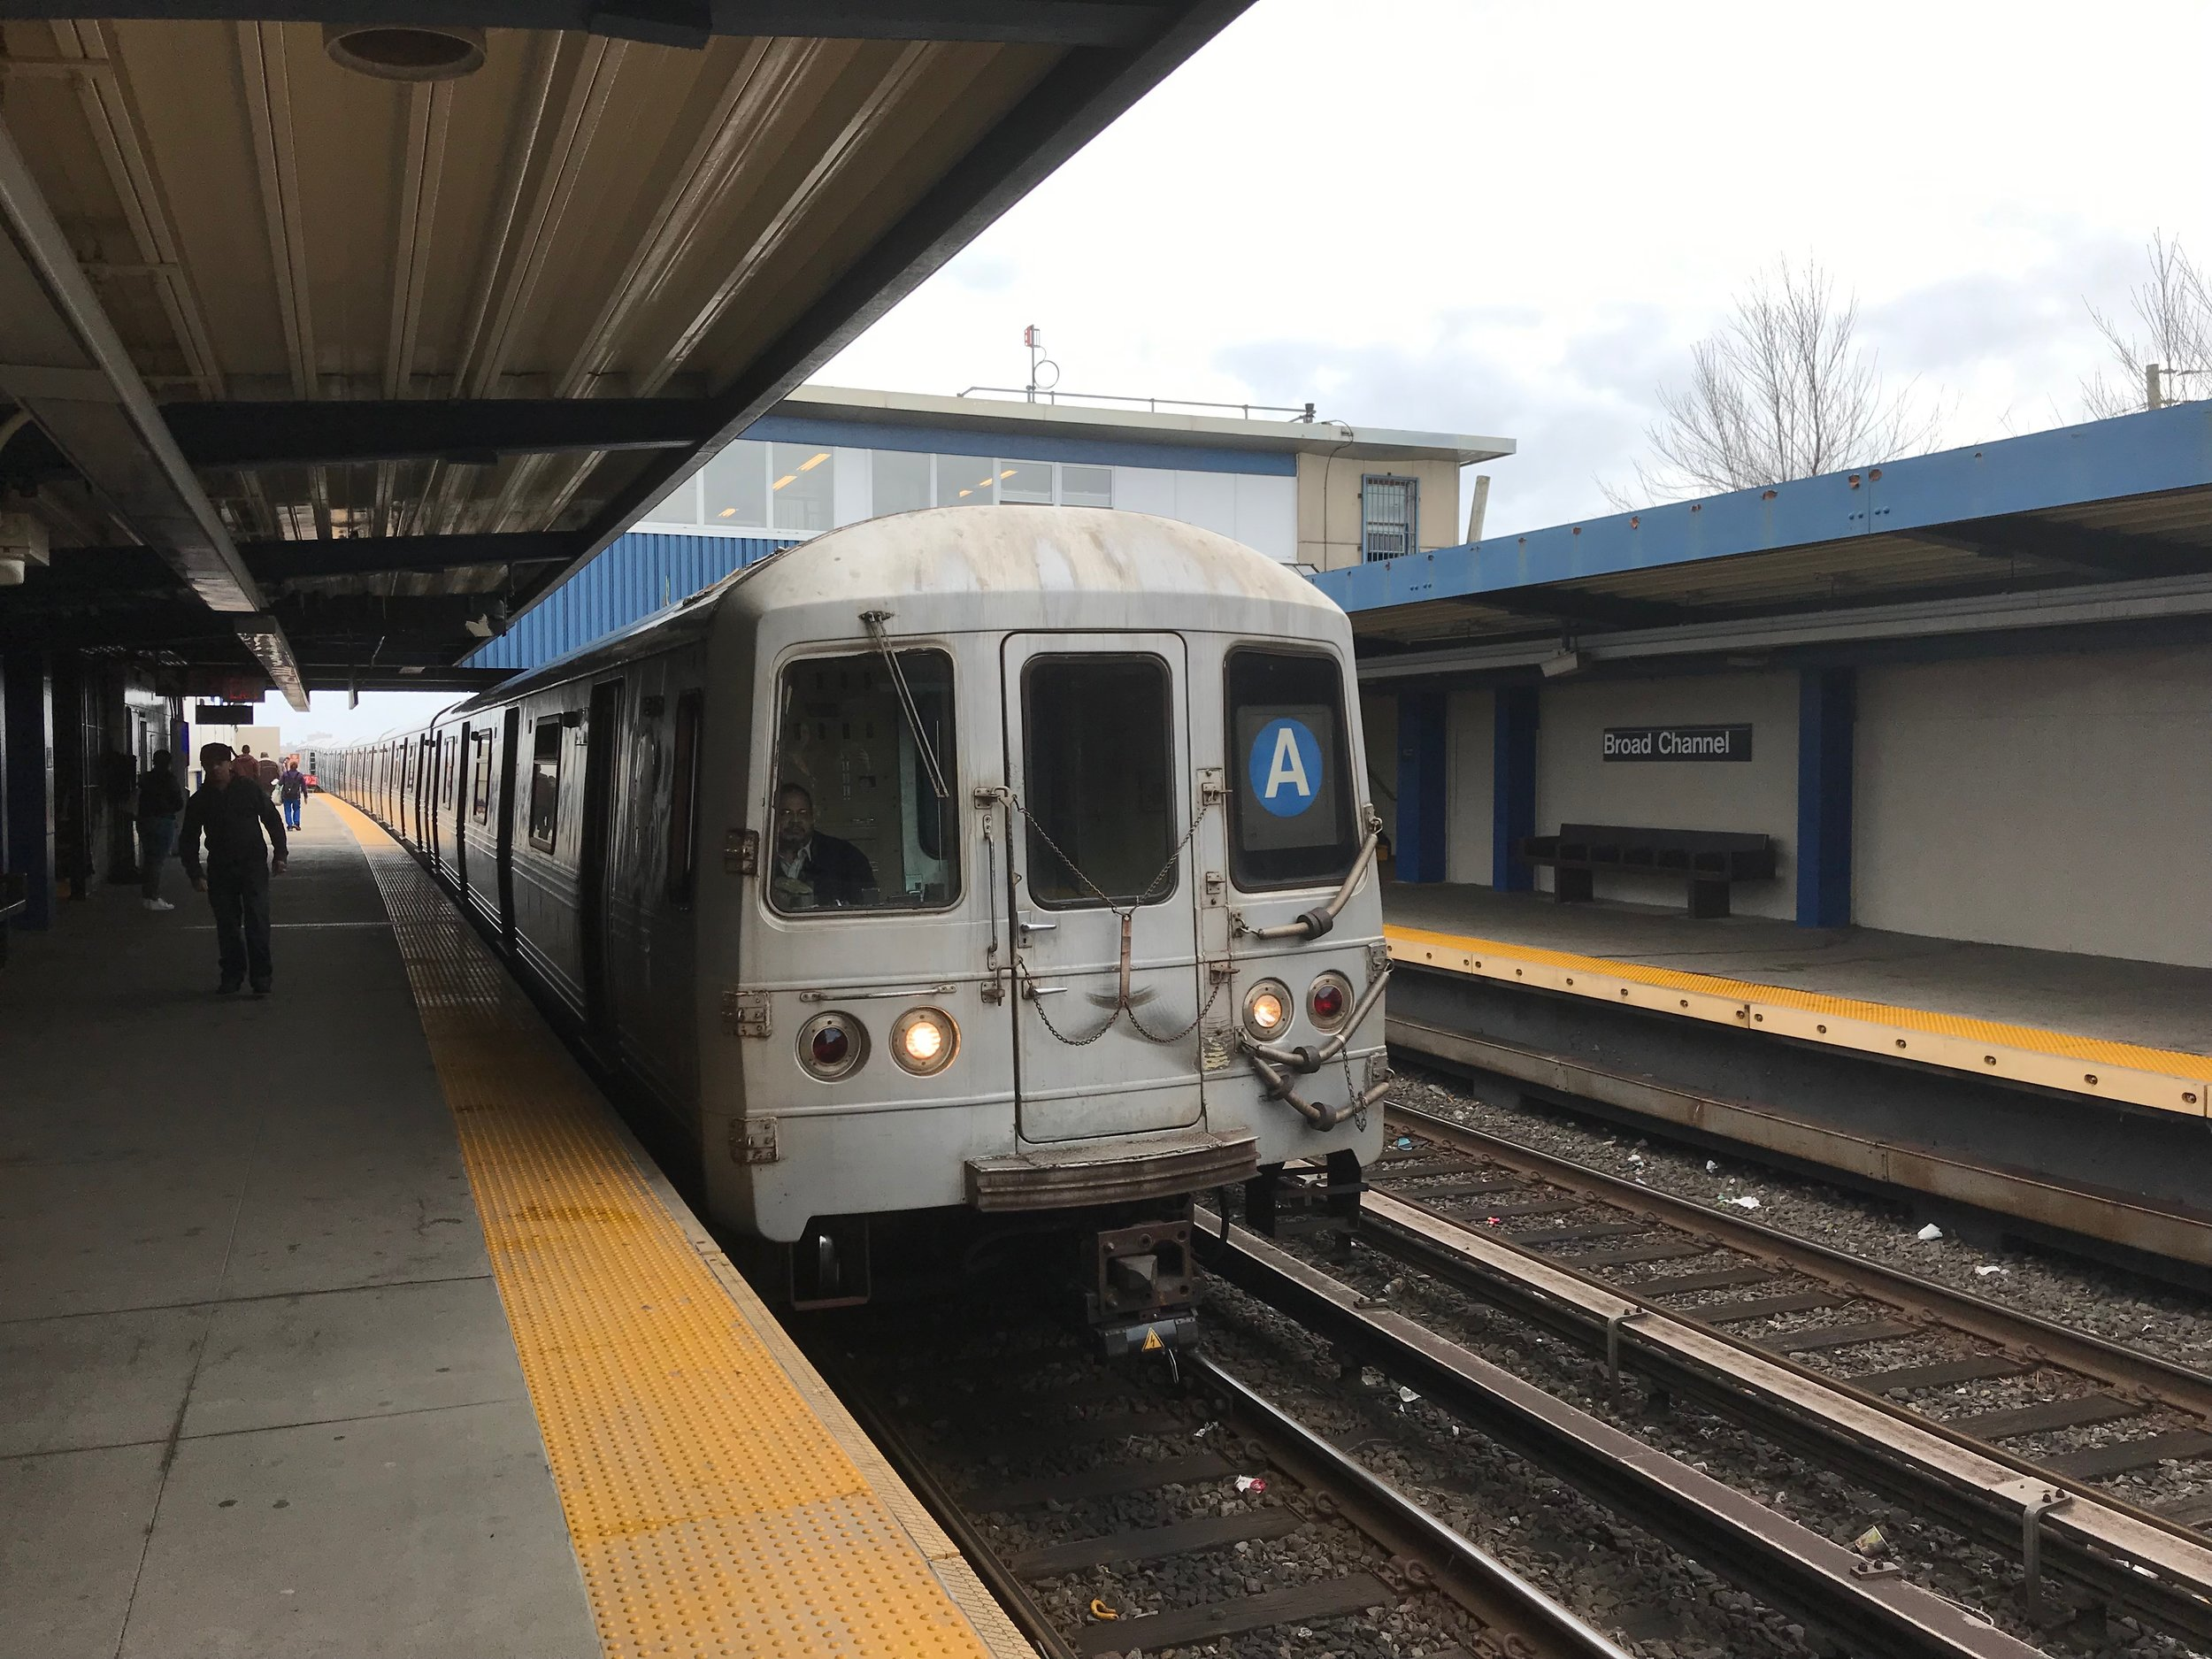 The A train.  Eagle  file photo by Jonathan Sperling.